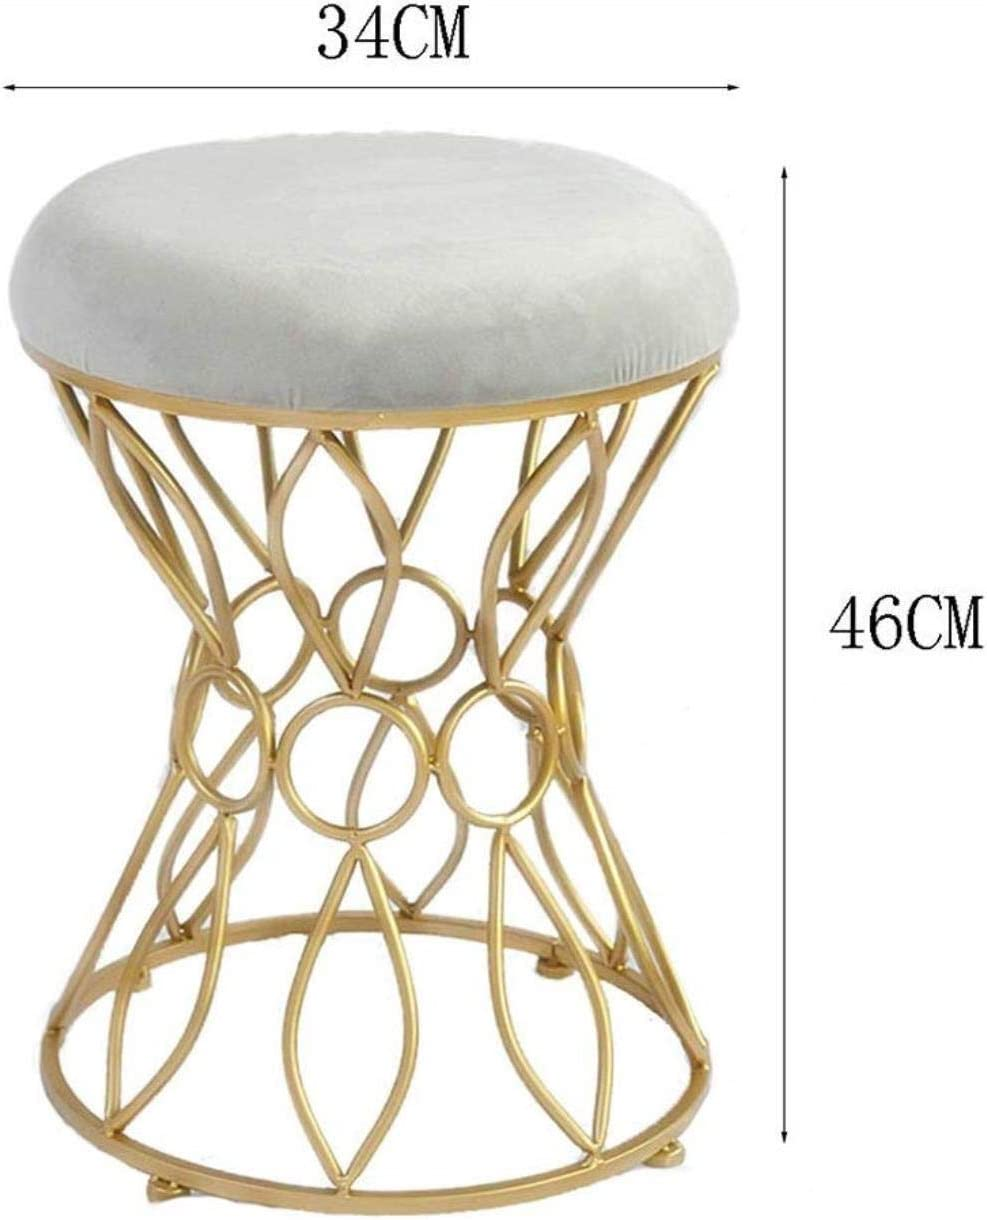 Stable Simple et chaise de maquillage moderne coiffeuse tabouret fer tabouret princesse chaise coiffeuse manucure Durable (Color : D) A